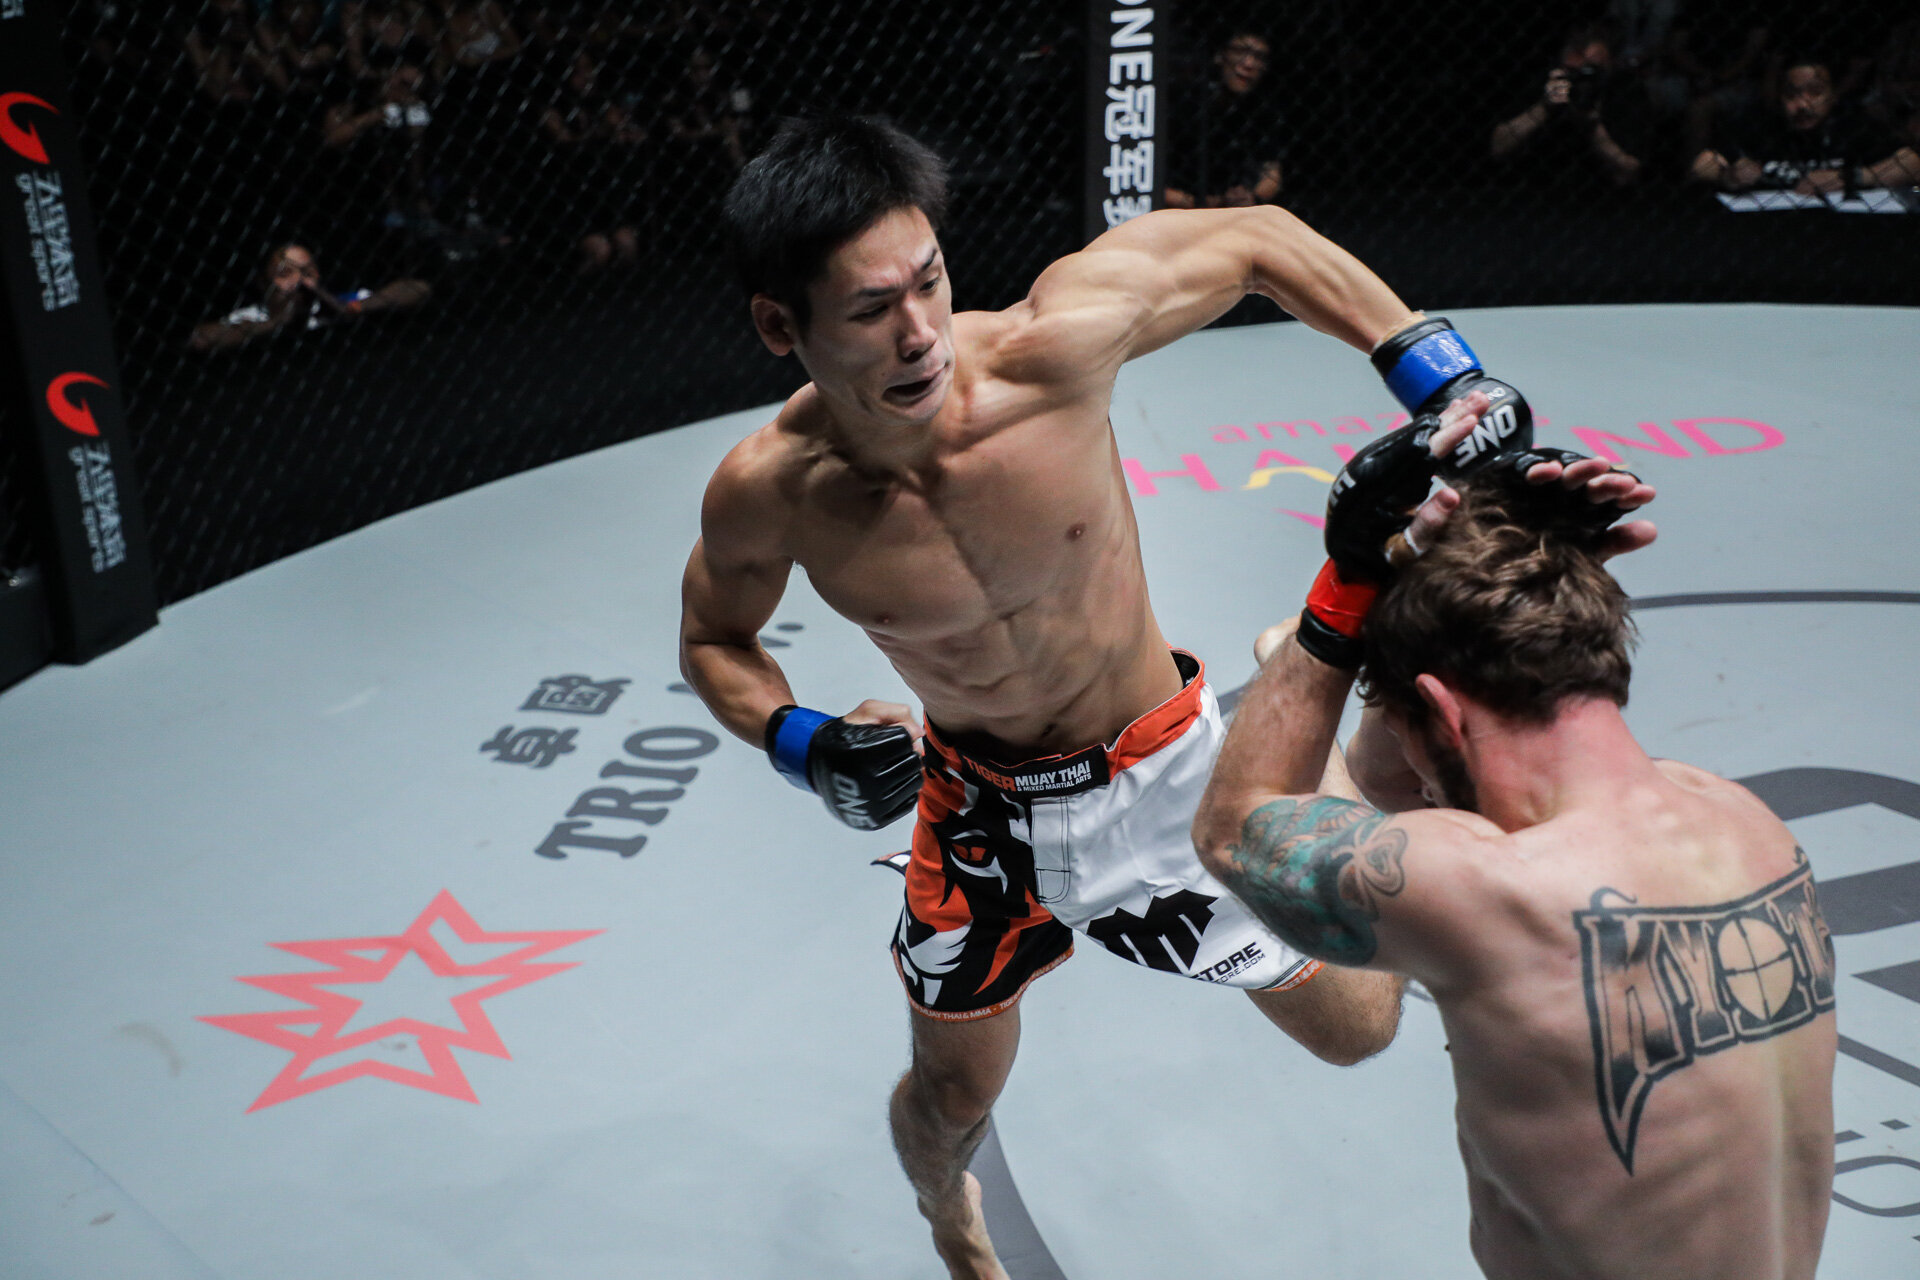 Tetsuya Yamada - Tetsuya Yamada is a Japanese Mixed Martial Artist fighting in the lightweight division of One Championship. He is a sponsored athlete at the famed Tiger Muay Thai gym in Phuket, Thailand.🔗Instagram